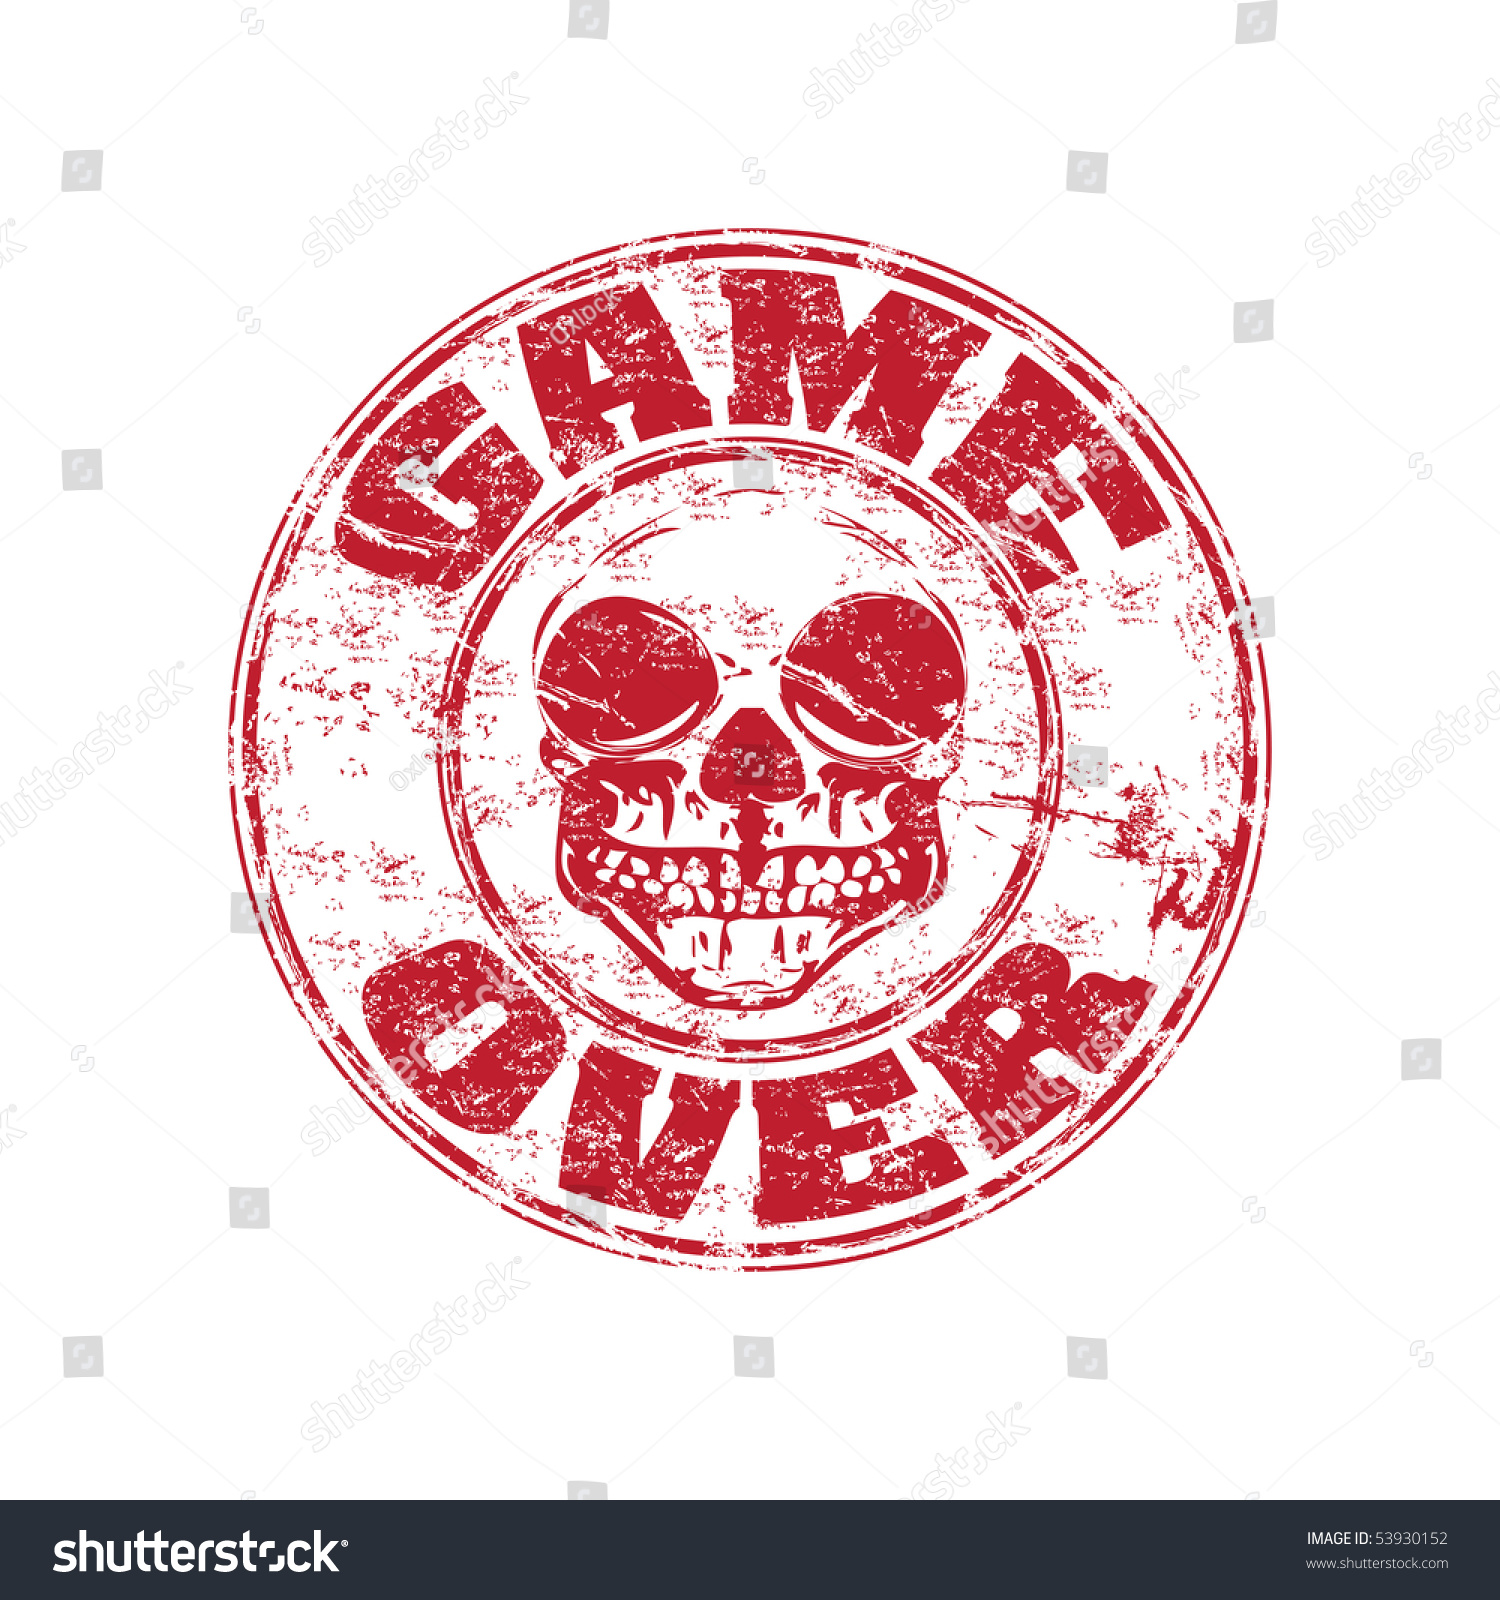 Red grunge rubber stamp skull text stock vector 53930152 red grunge rubber stamp with skull and the text game over written inside the stamp buycottarizona Images